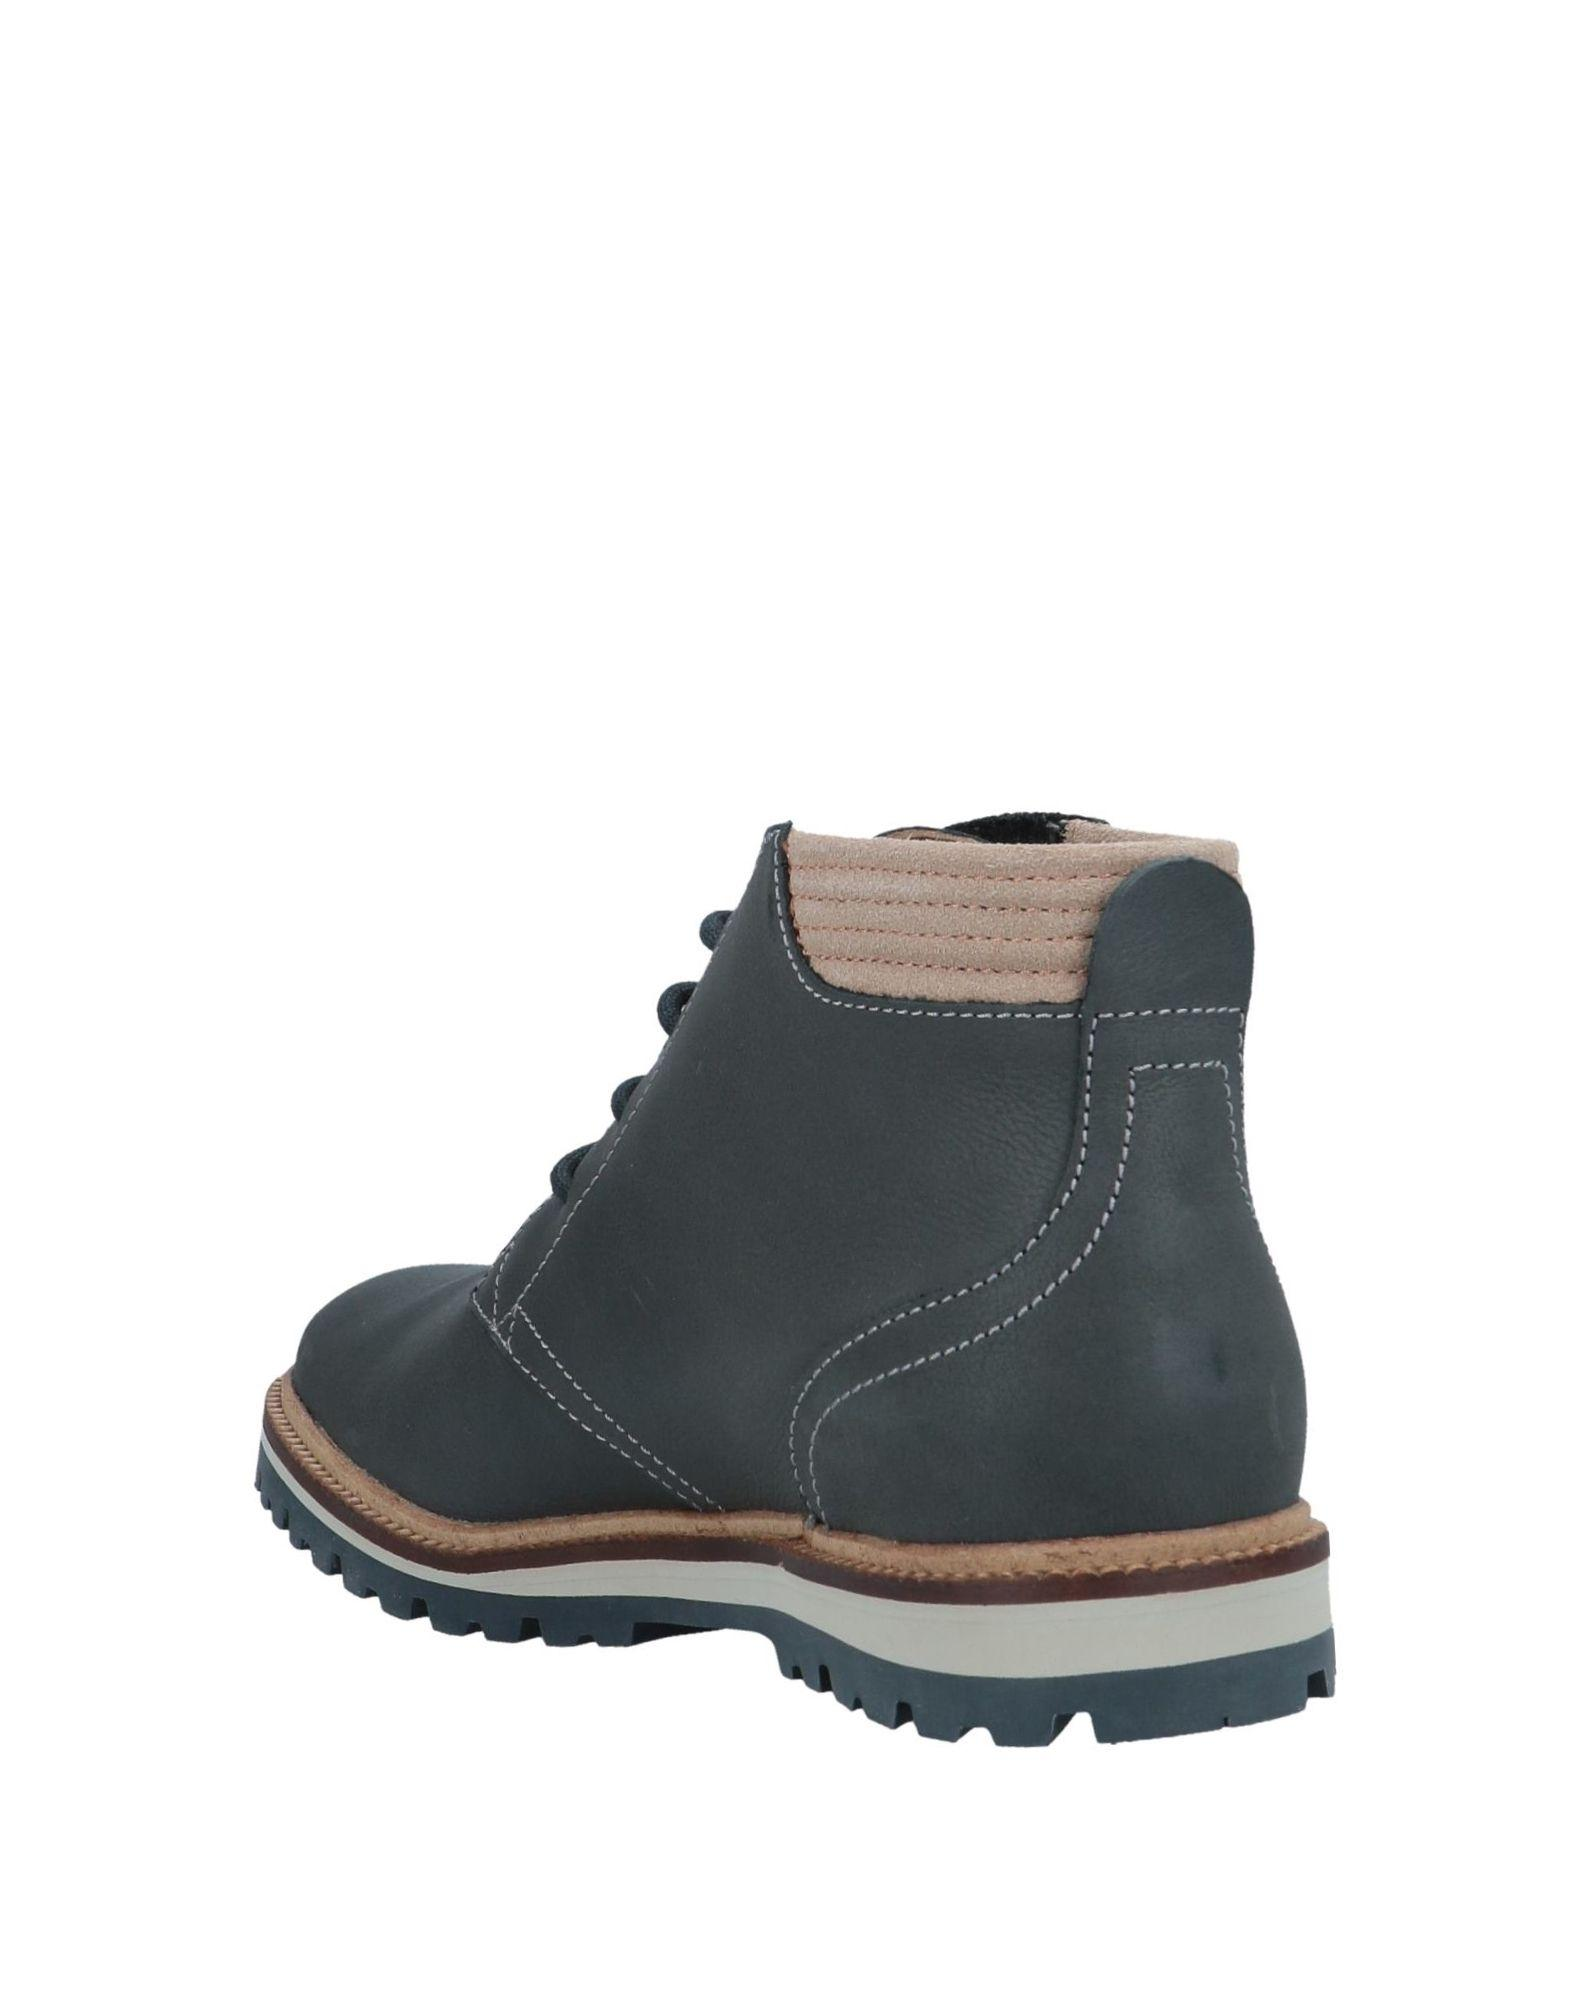 24014b63c87b68 Lyst - Lacoste Ankle Boots in Gray for Men